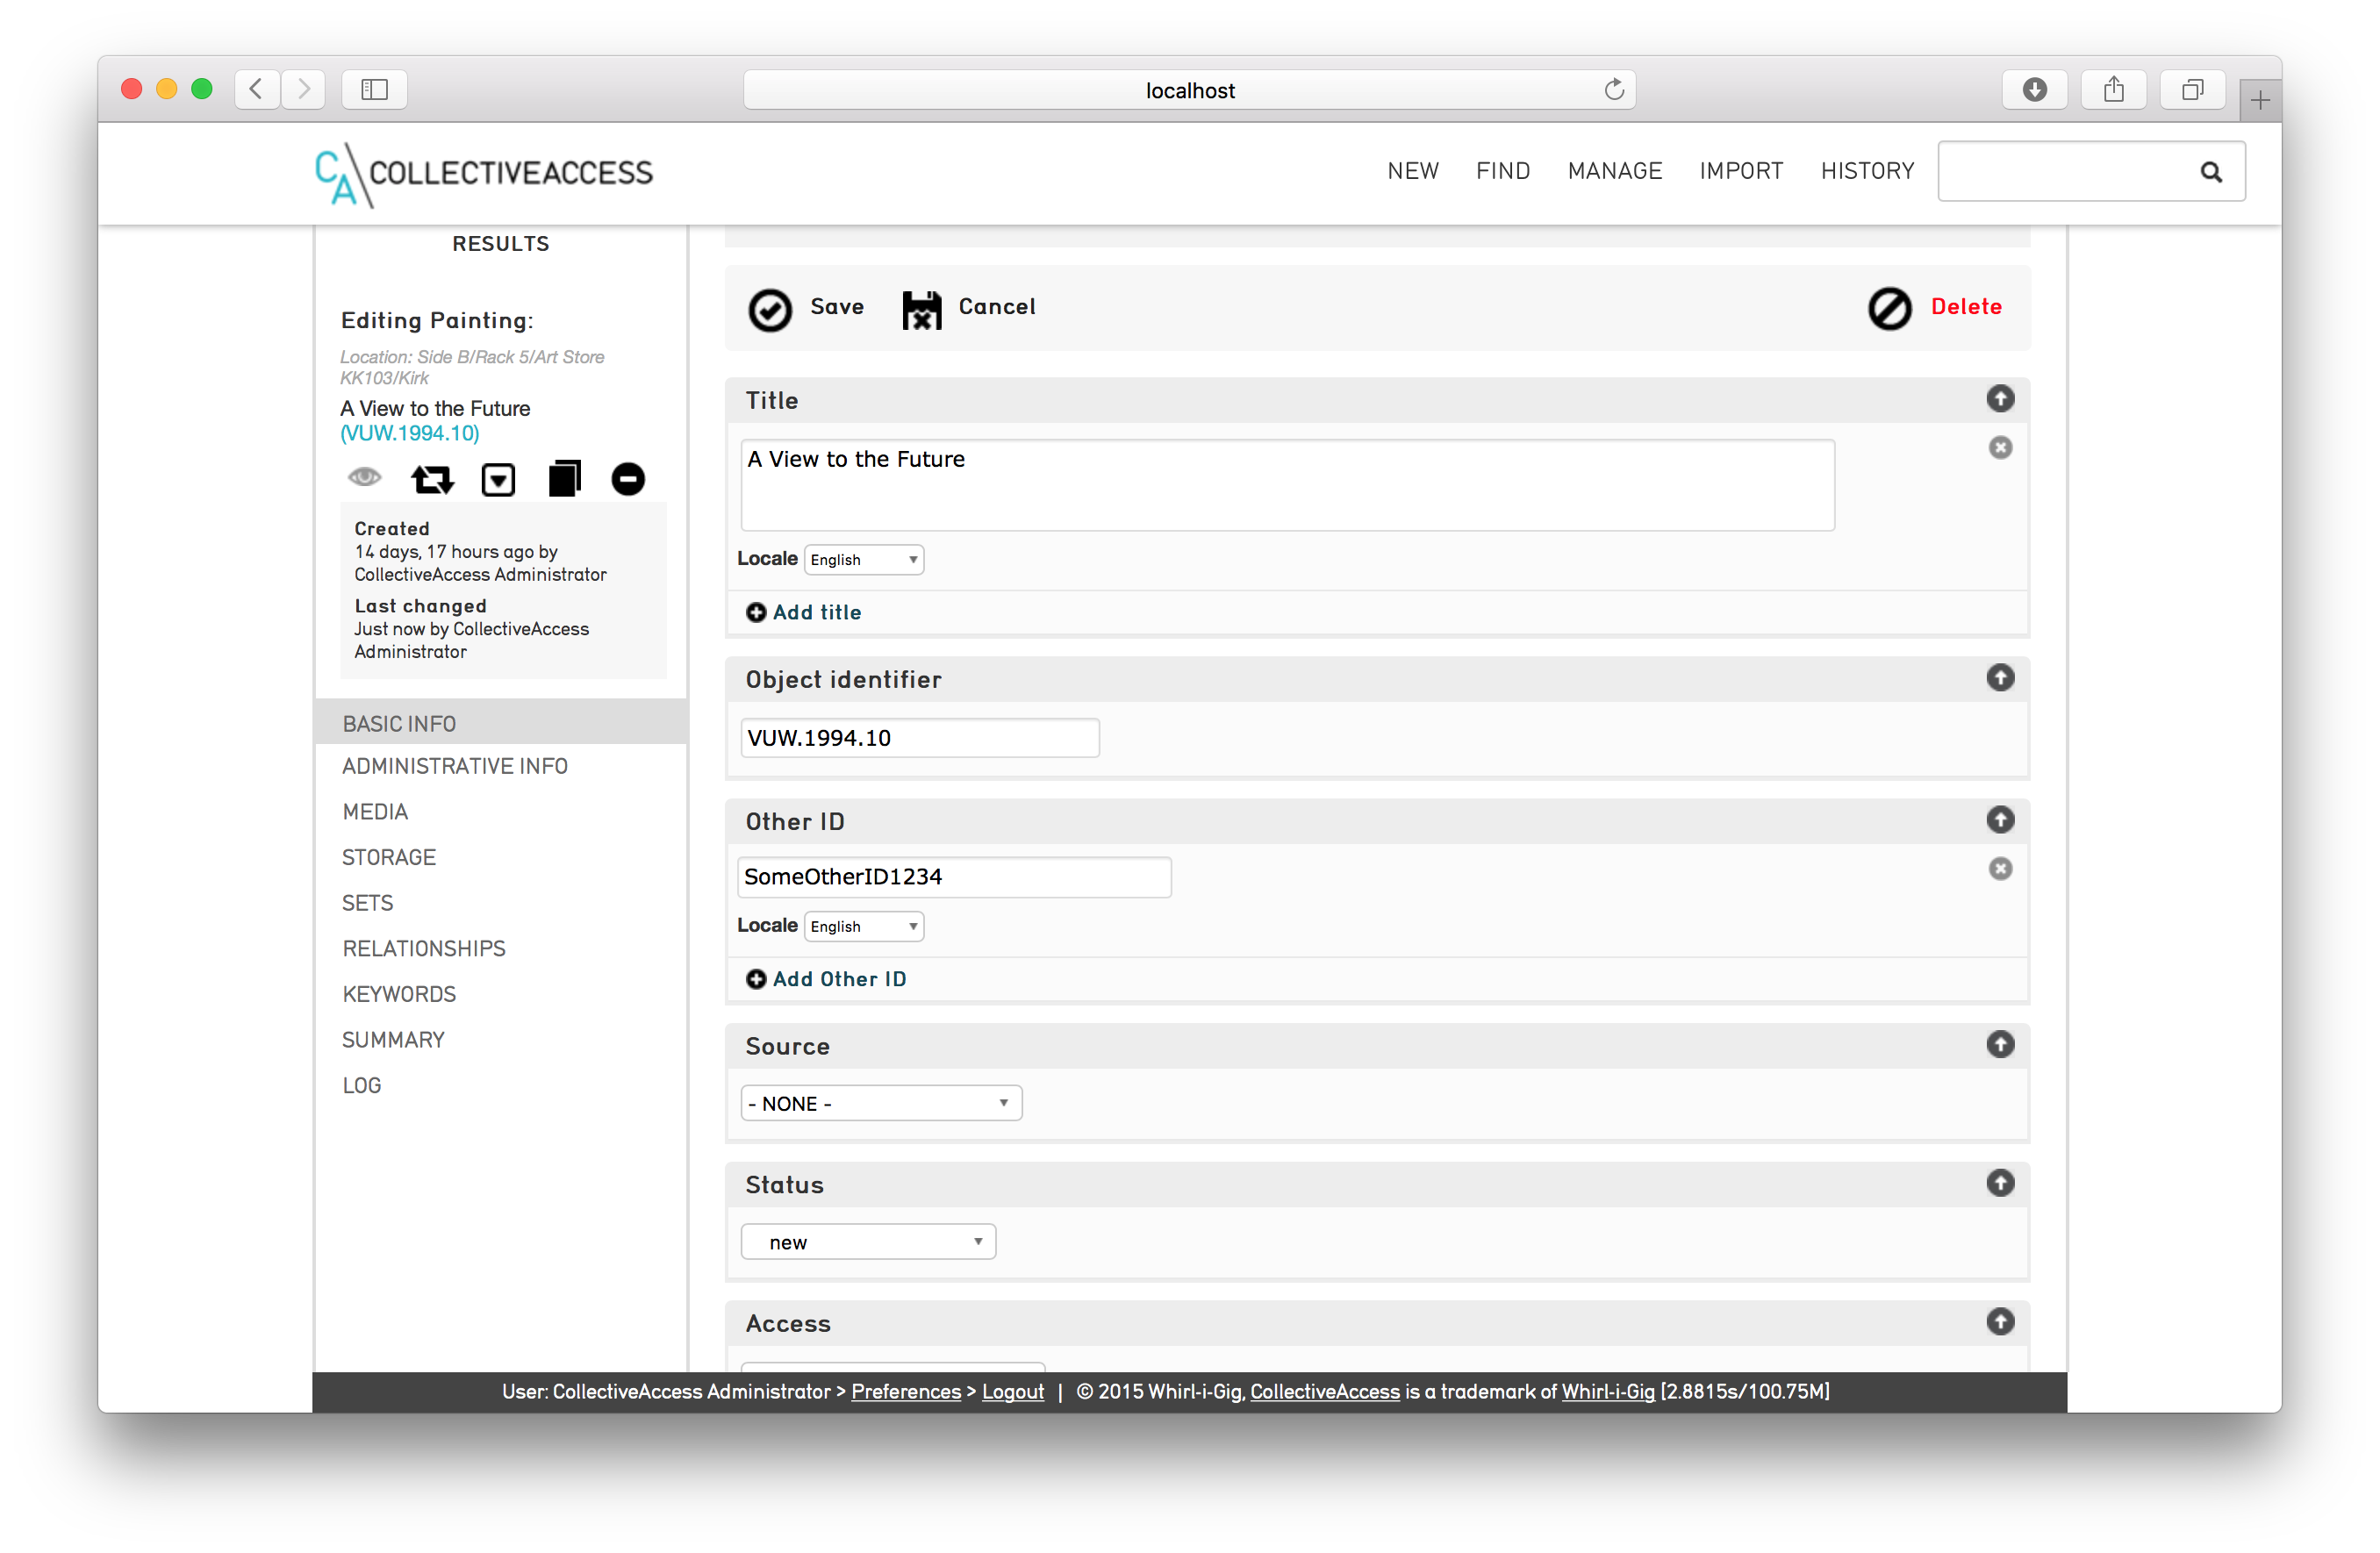 The Other ID field has been added to the list of metadata elements to be displayed on the standard object editor screen